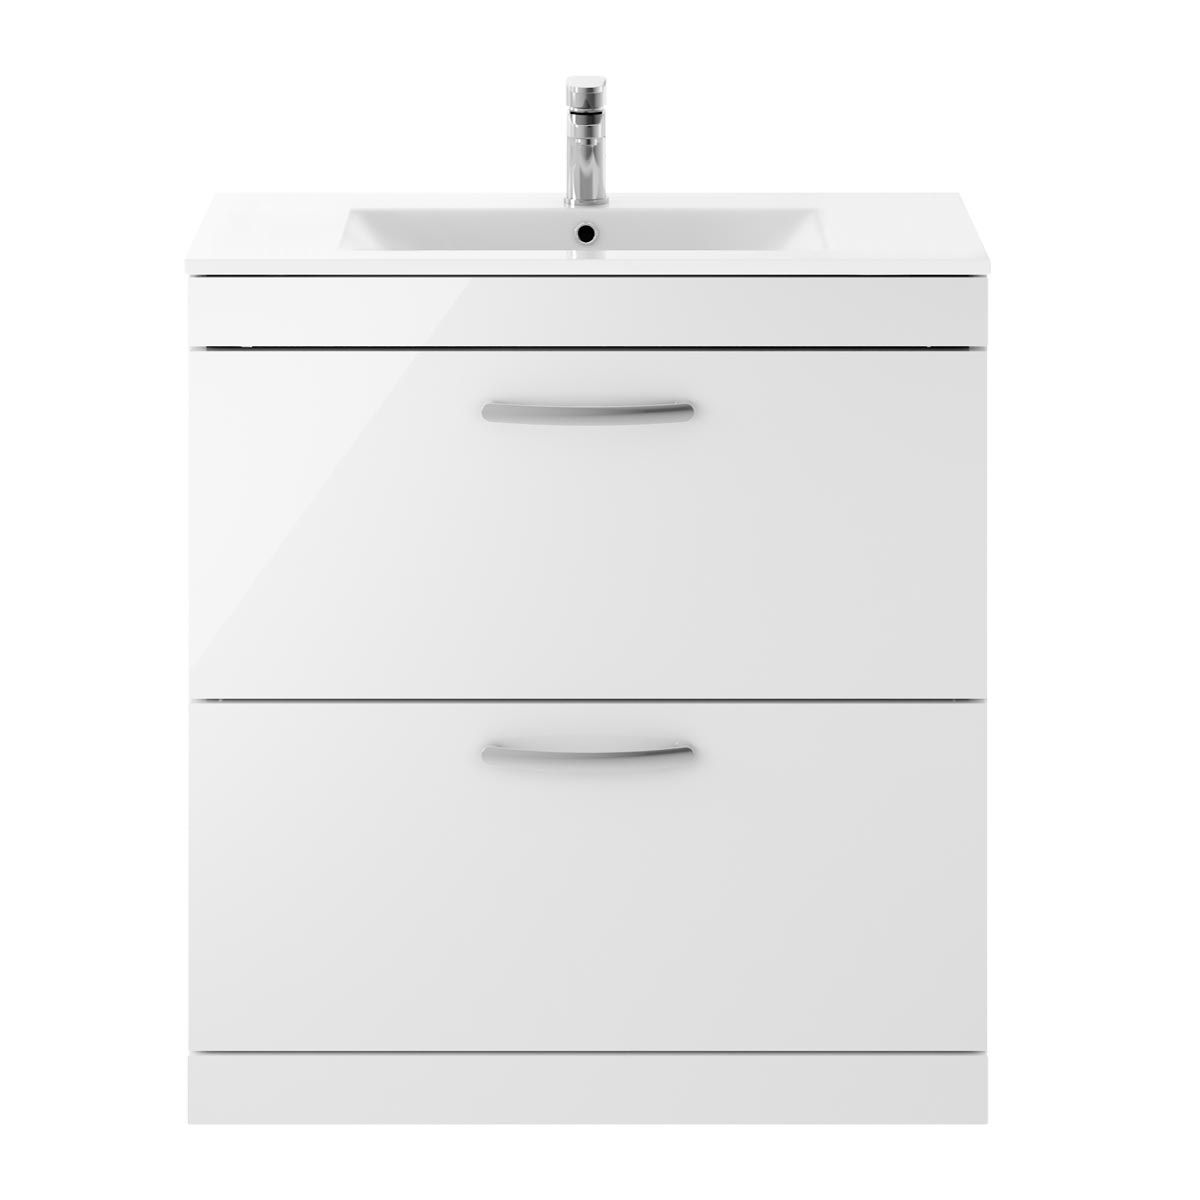 Nuie Athena Gloss White 2 Drawer Floor Standing Vanity Unit with 18mm Profile Basin 800mm